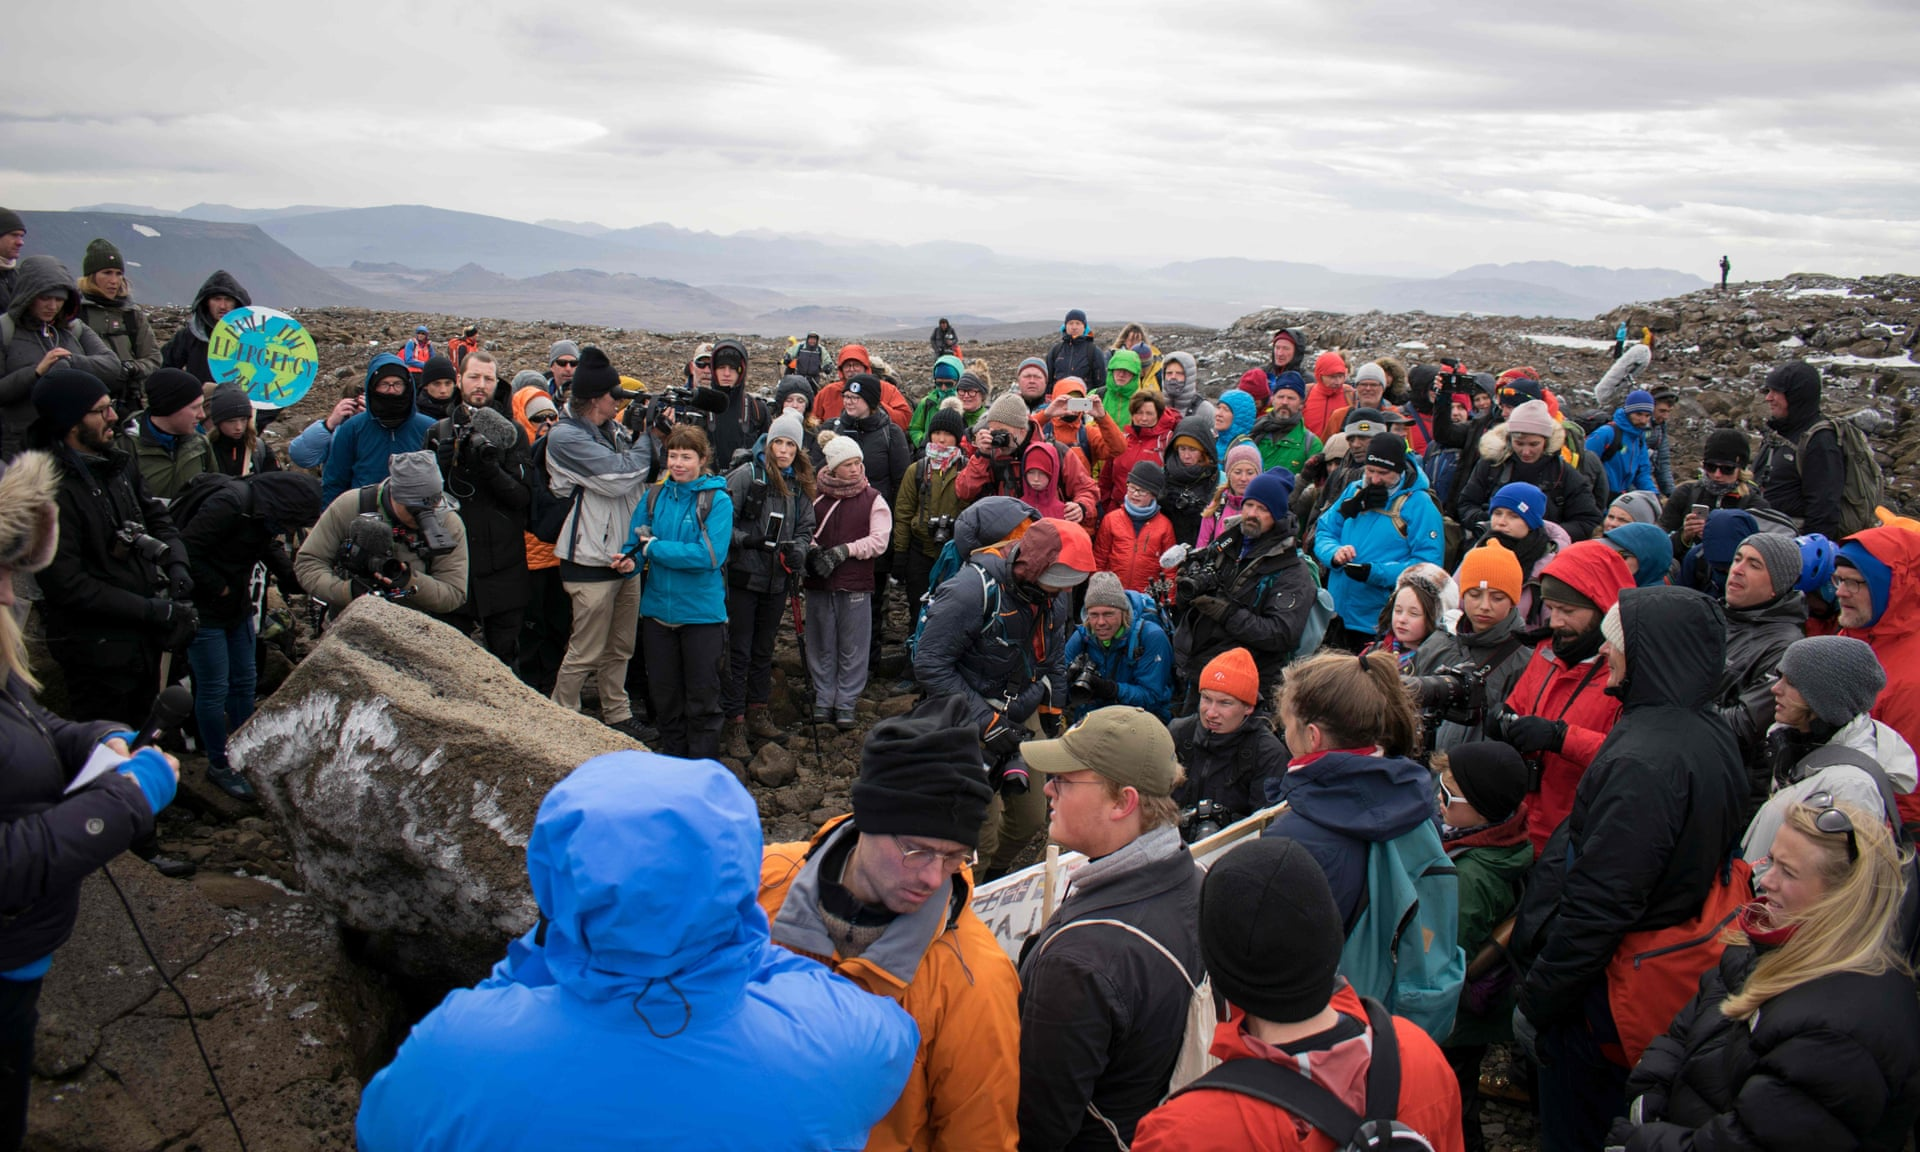 A ceremony to mark the passing of Okjokull, Iceland's first glacier lost to climate change. It once covered 16sq km but has melted to a fraction. Photograph: Jeremie Richard